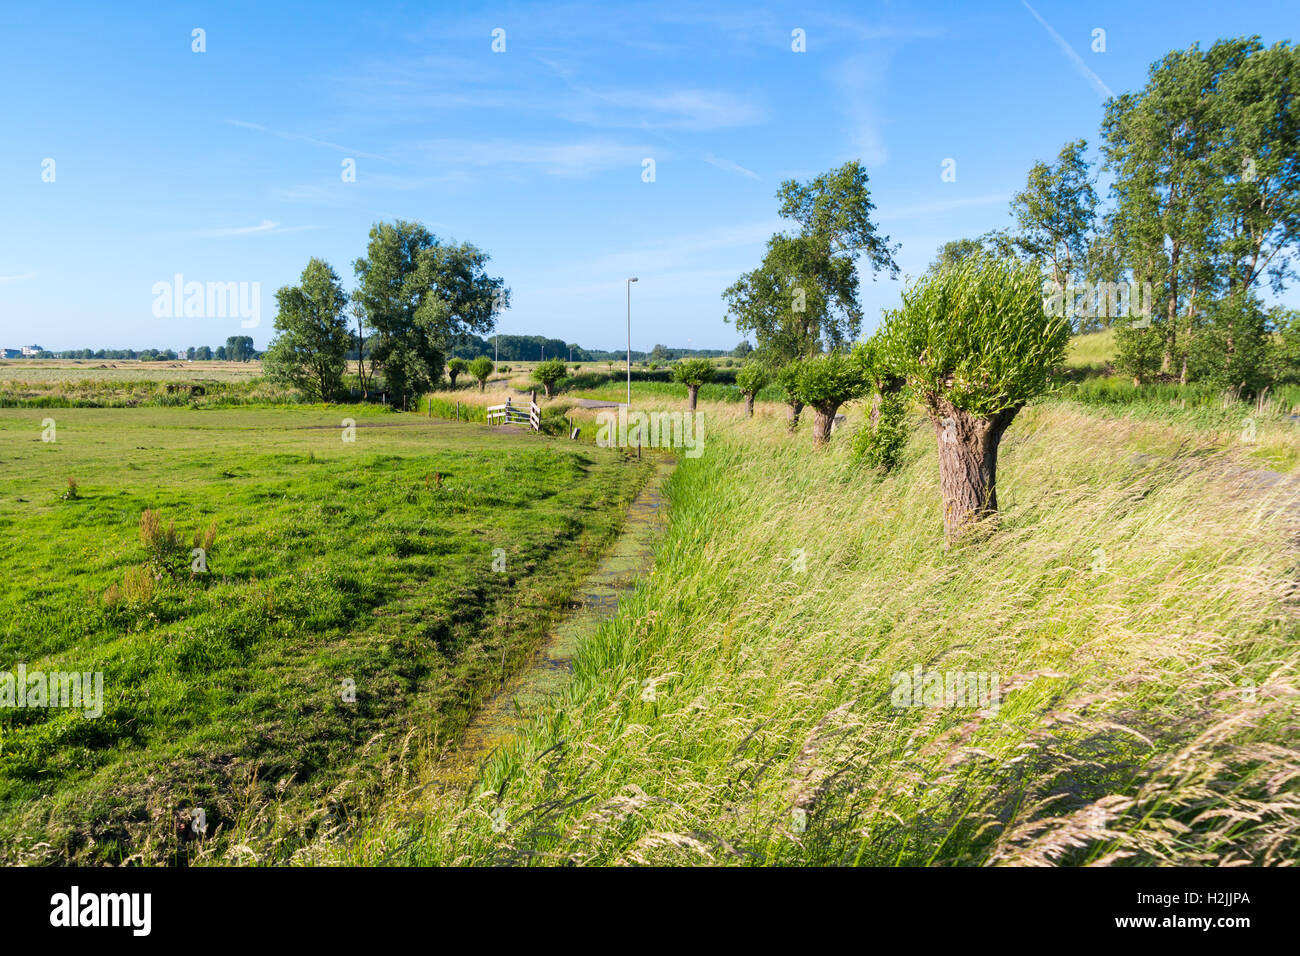 Dutch countryside polder landscape with field, ditch and pollard willows in Spaarndam near Haarlem, Netherlands - Stock Image